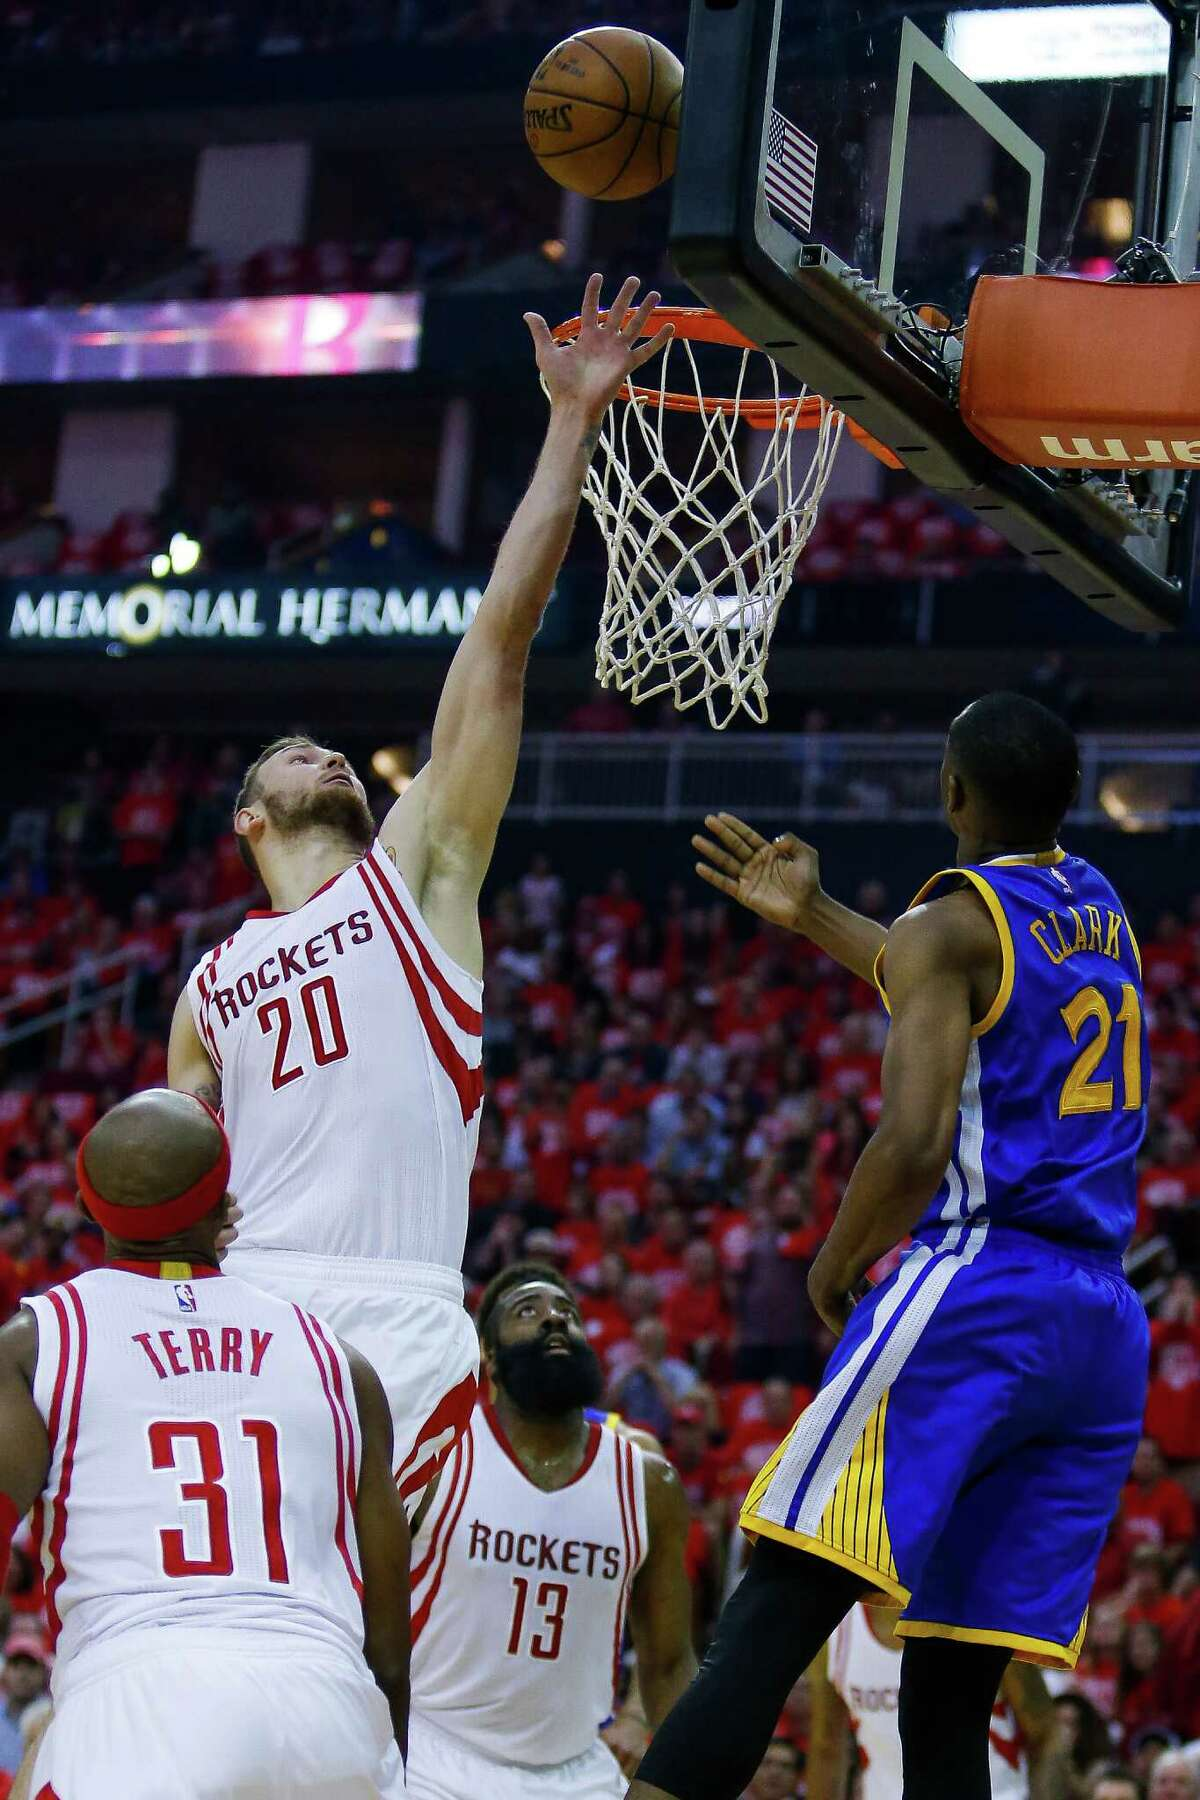 Houston Rockets forward Donatas Motiejunas (20) denies a shot to Golden State Warriors guard Ian Clark (21) during the first half in game four of a first-round NBA Playoffs series at Toyota Center Sunday, April 24, 2016 in Houston.